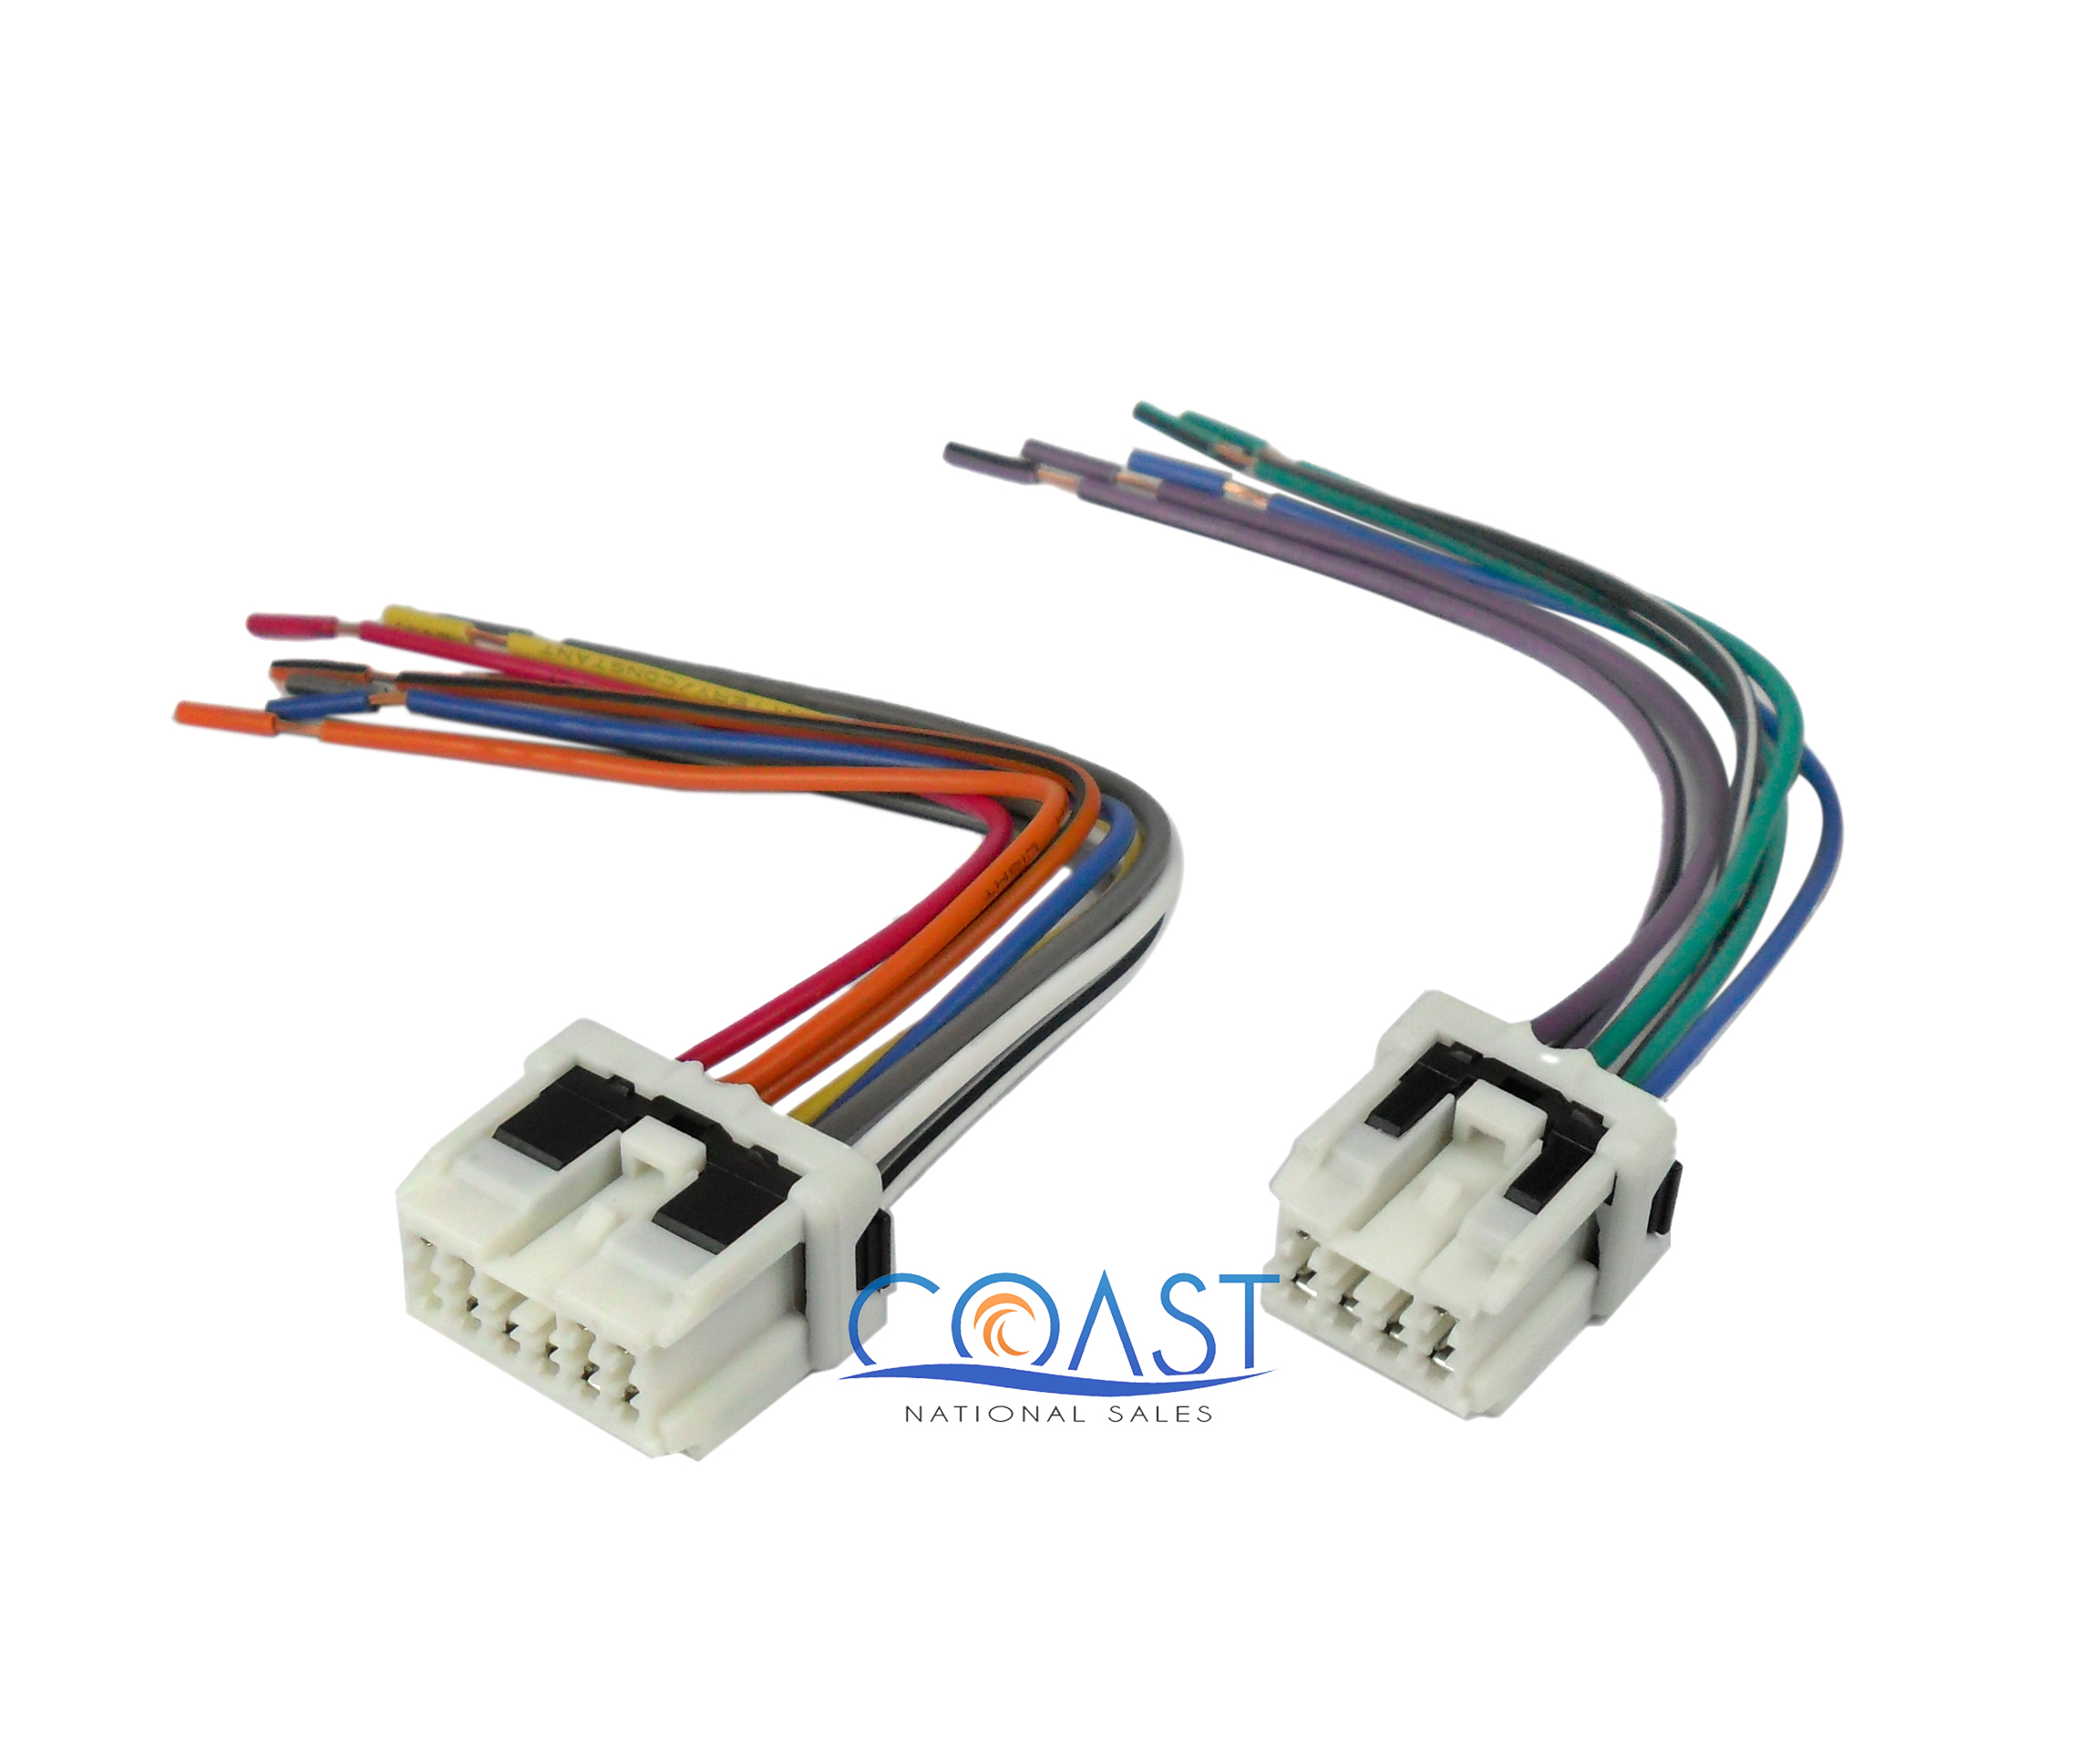 Nissan Wiring Harness Connectors : Nissan oem wiring harness connectors get free image